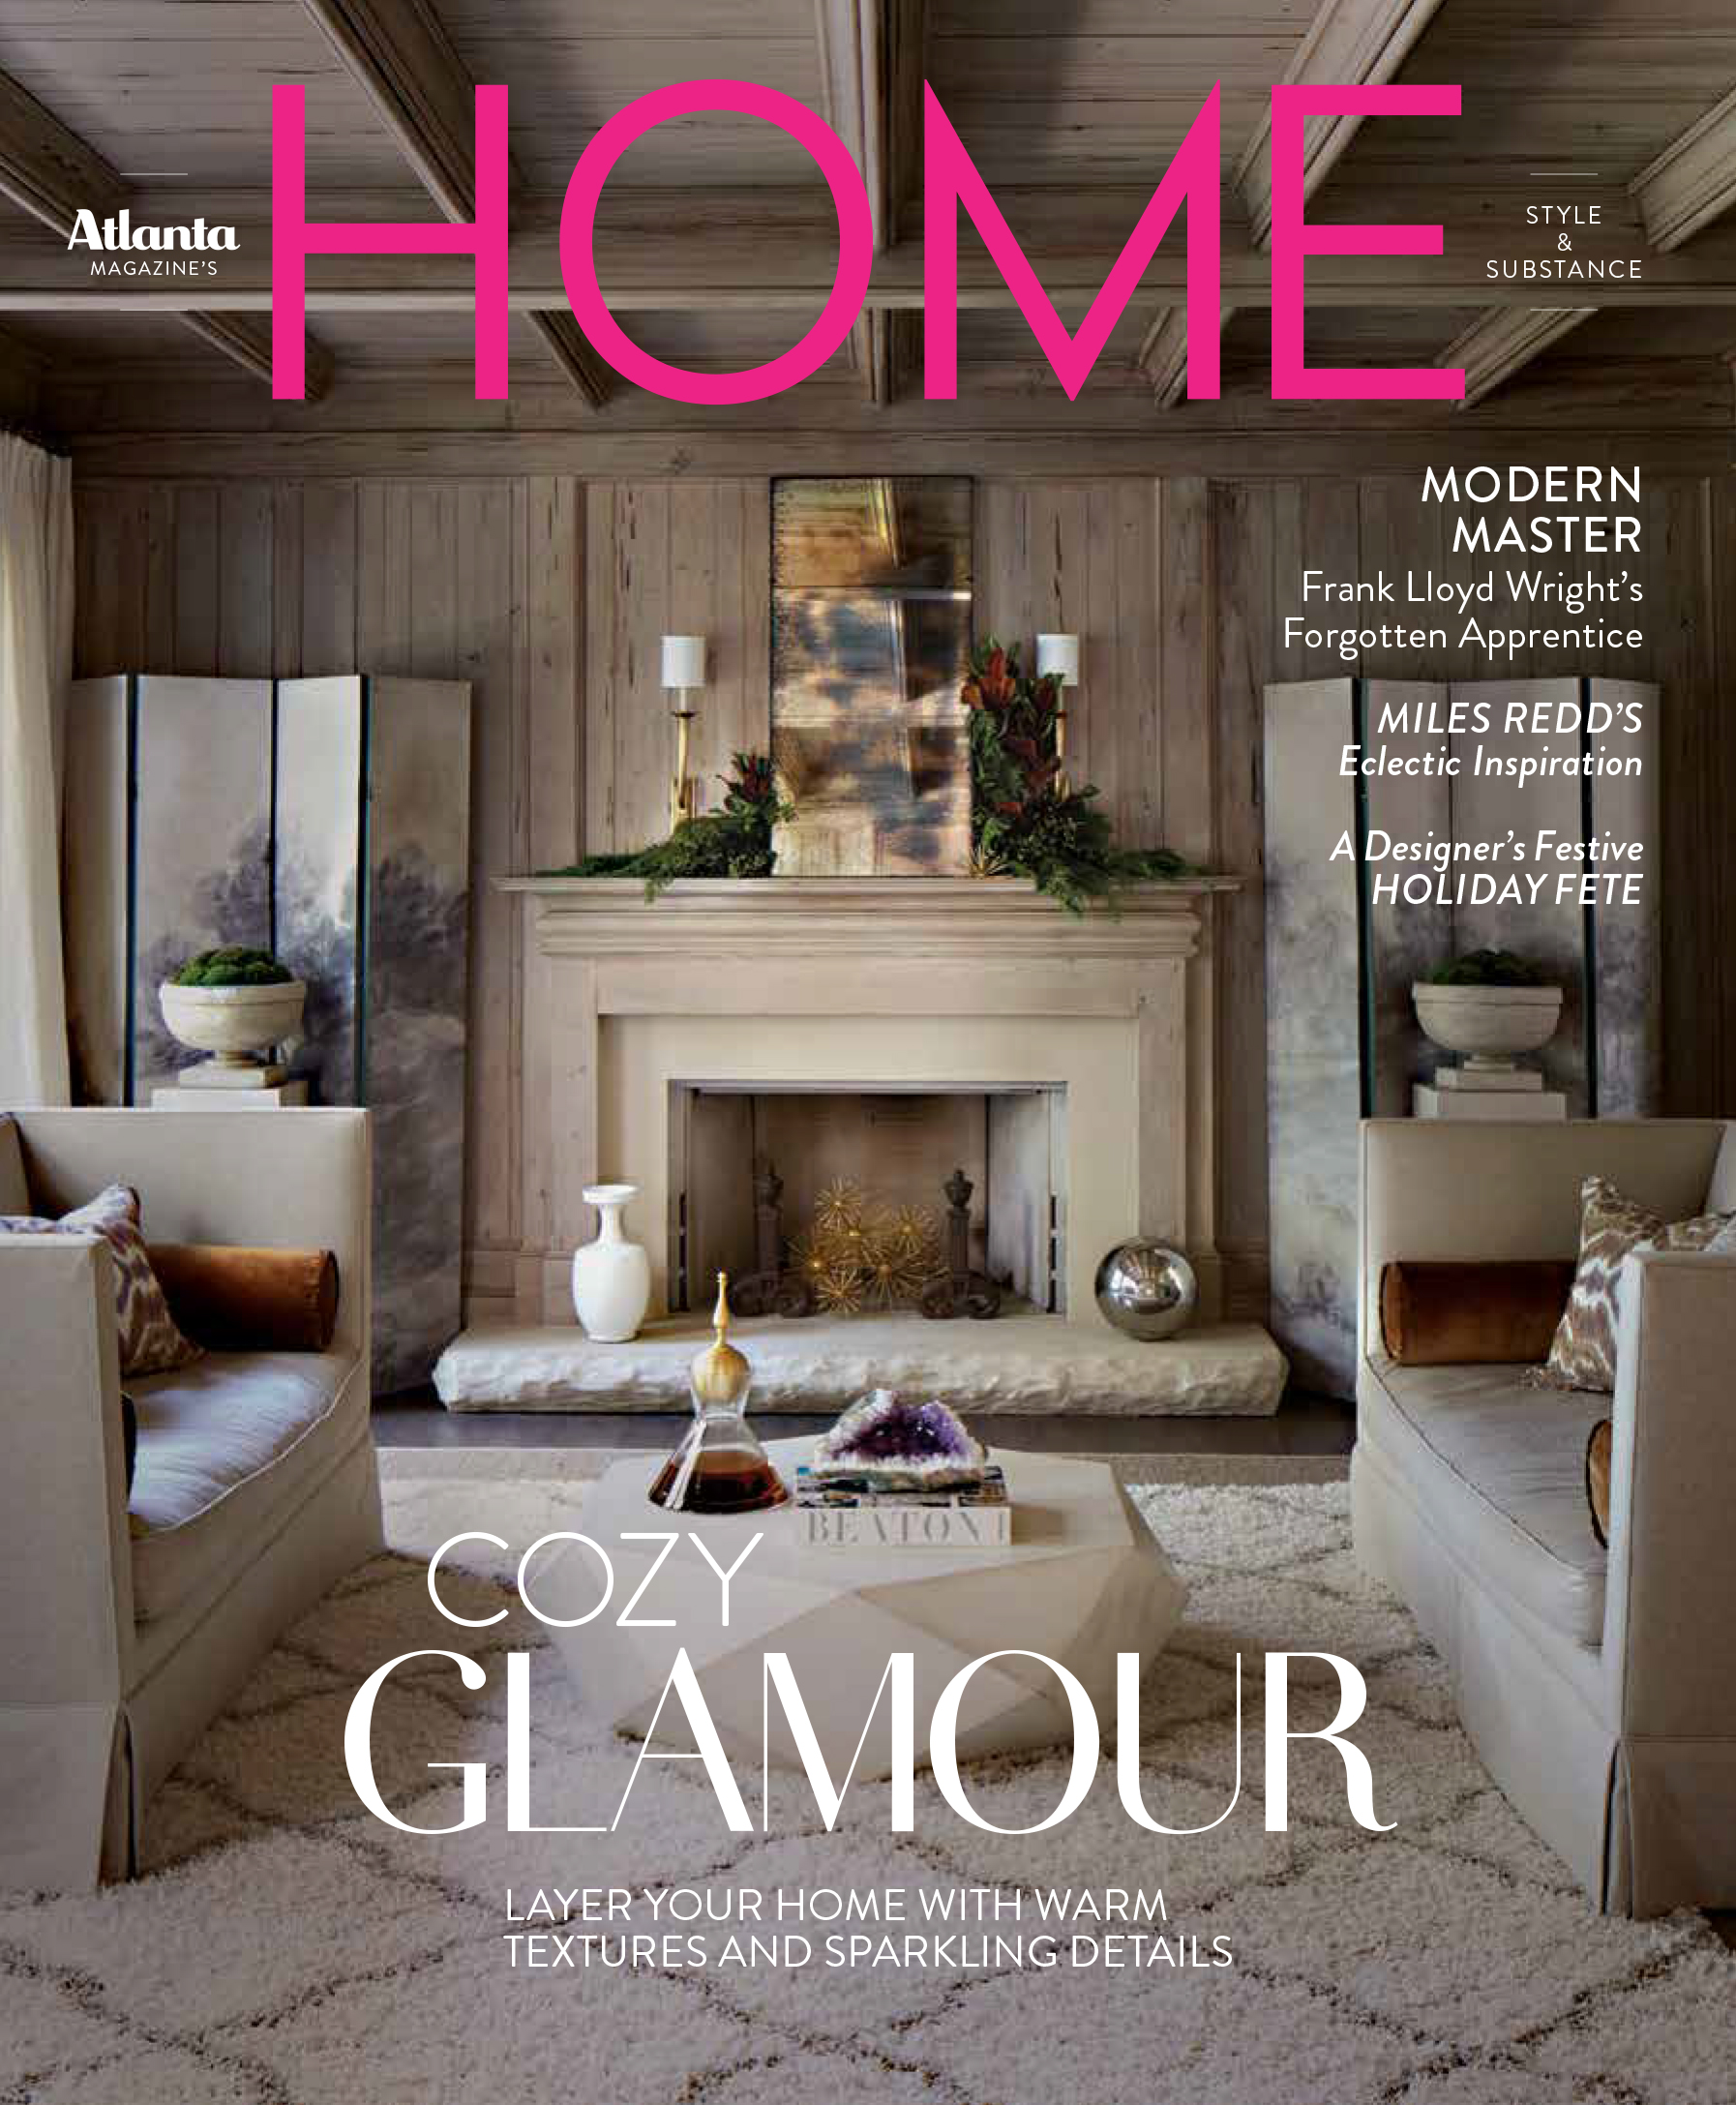 atlanta magazines home - Popular Interior Design Magazines